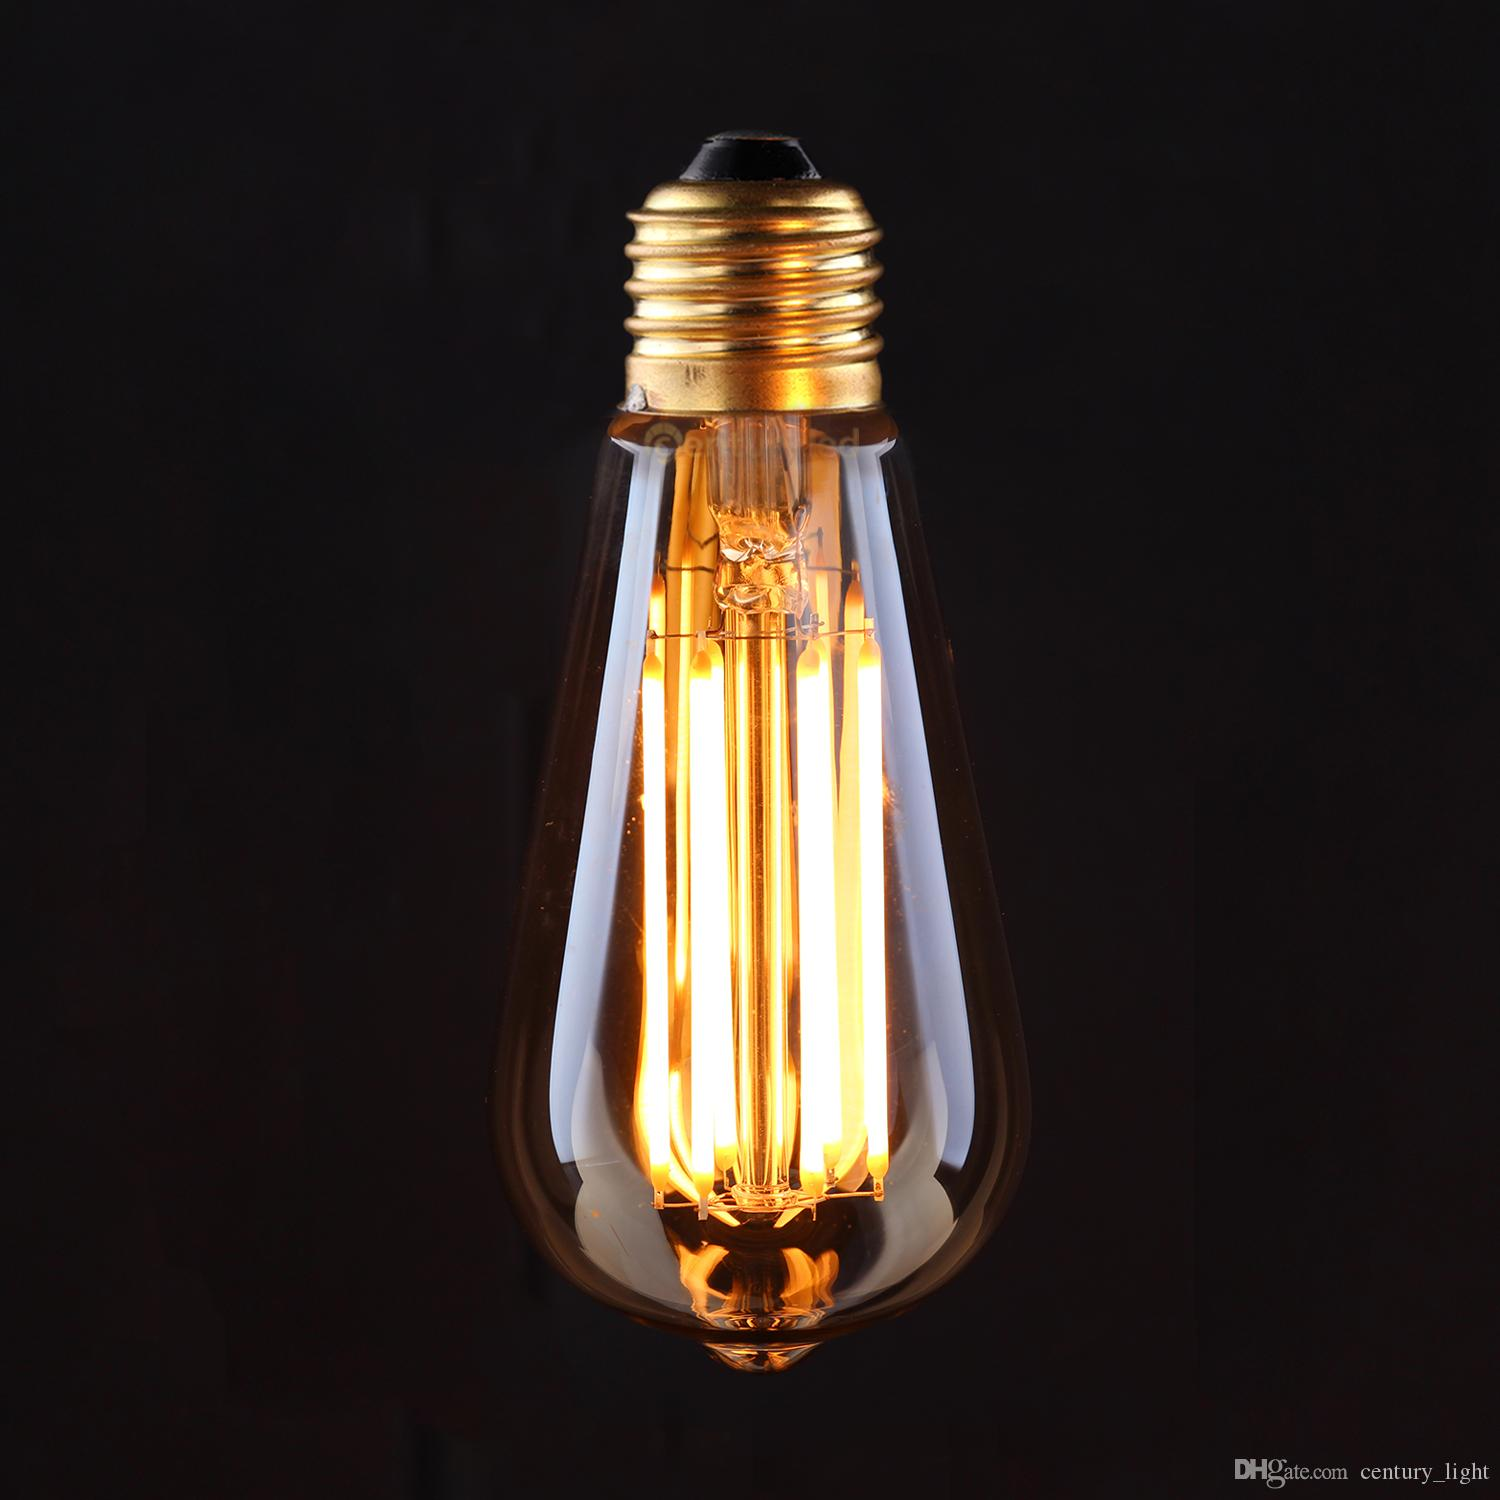 Vintage LED Filament Light Bulb 6W 8W 2200K Edison Golden ST19/ST64 Style Certified by UL Dimmable